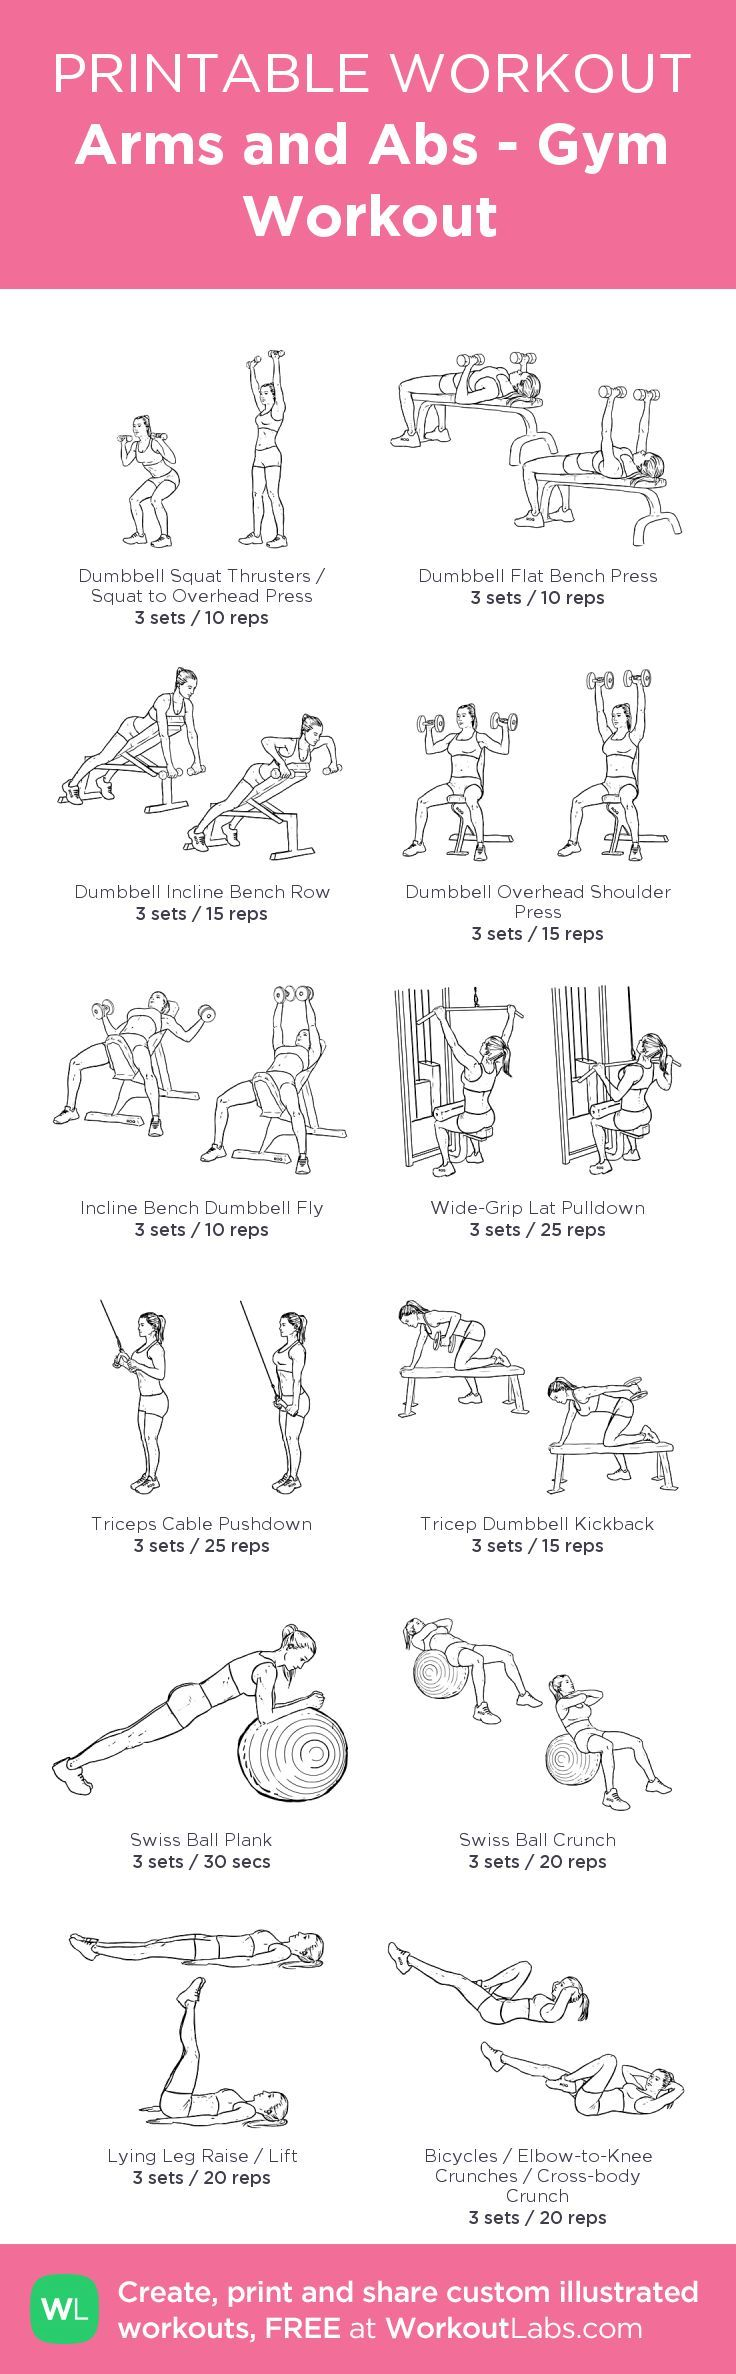 Arms and Abs - Gym Workout – my custom workout created at WorkoutLabs.com • Click through to download as printable PDF! #customworkout